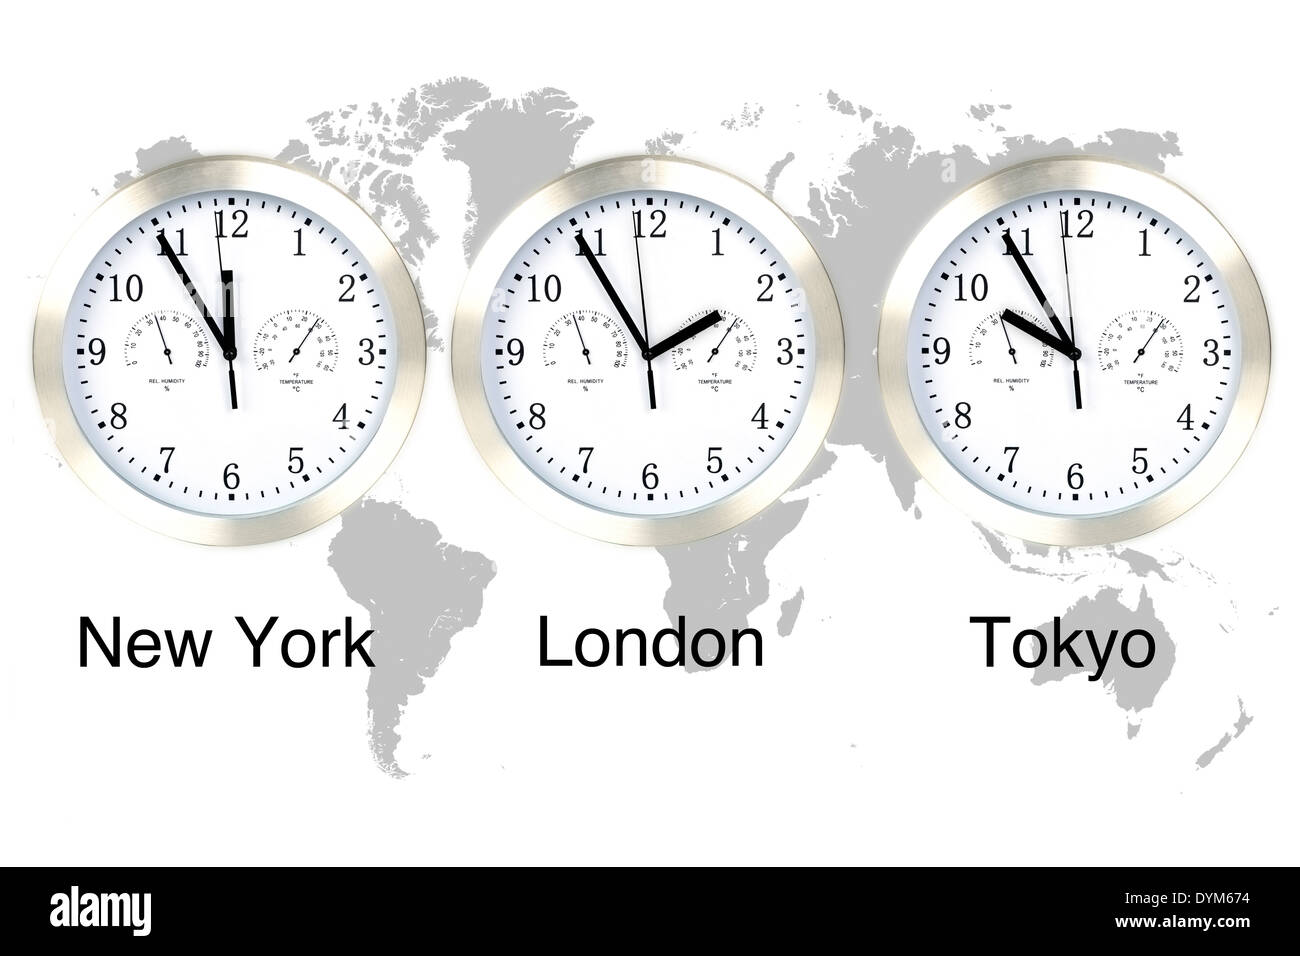 World time zones. Time in London, New York and Tokyo, three clocks against grey world map. - Stock Image